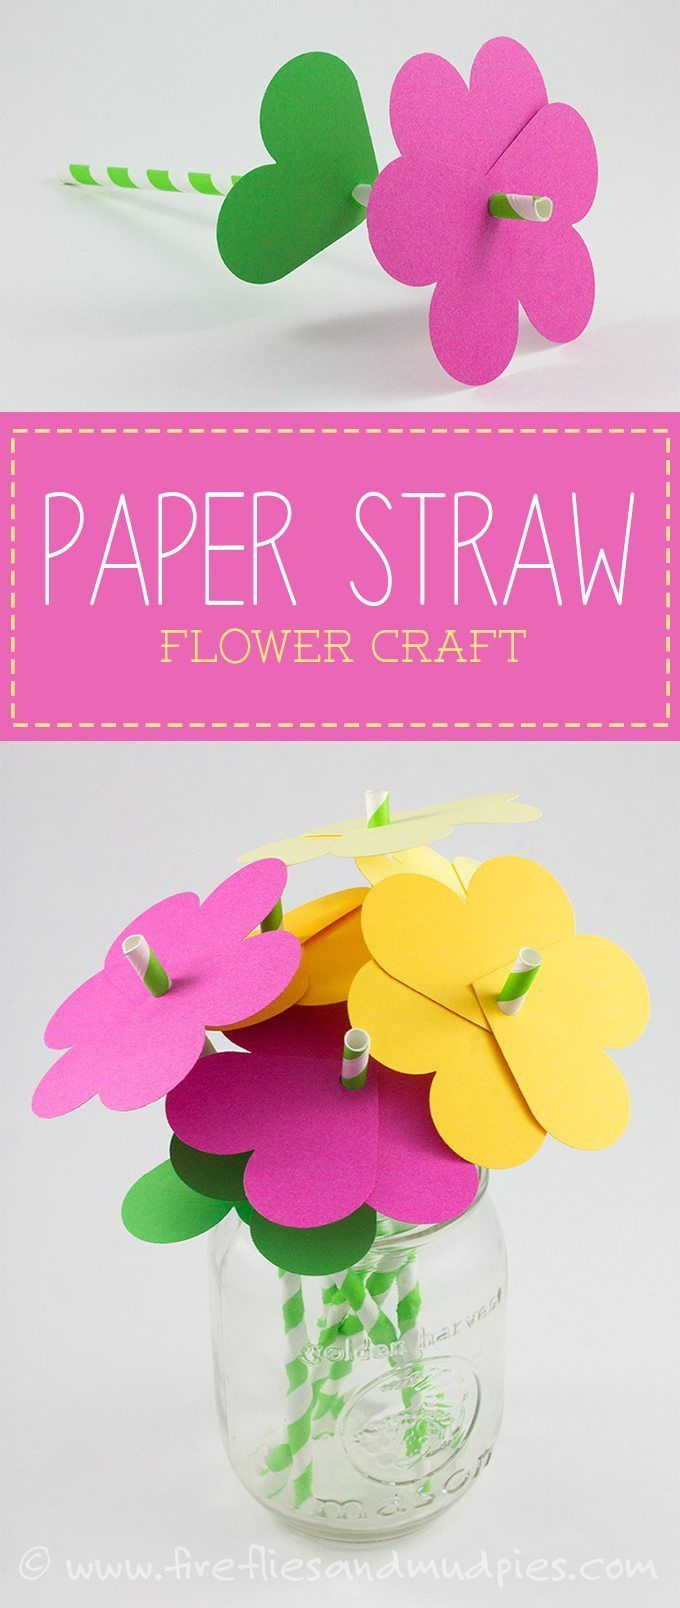 Paper Straw Flower Craft  Perfect for Spring! | Fireflies and Mud Pies